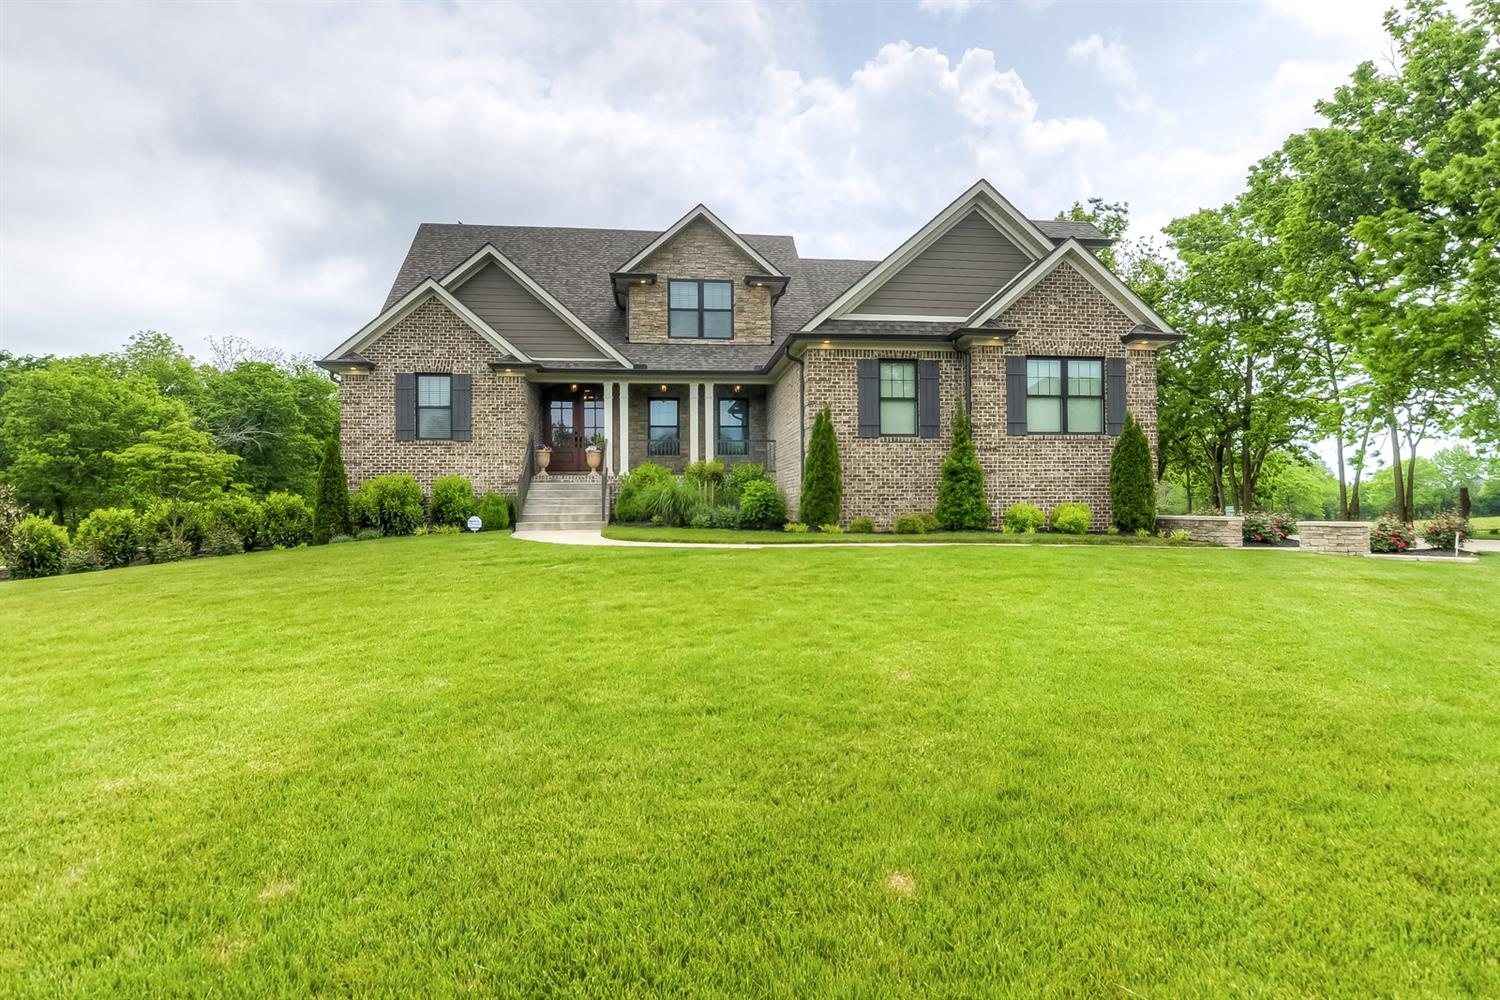 Home For Sale at 101 Deerfield Cir, Nicholasville, KY 40356